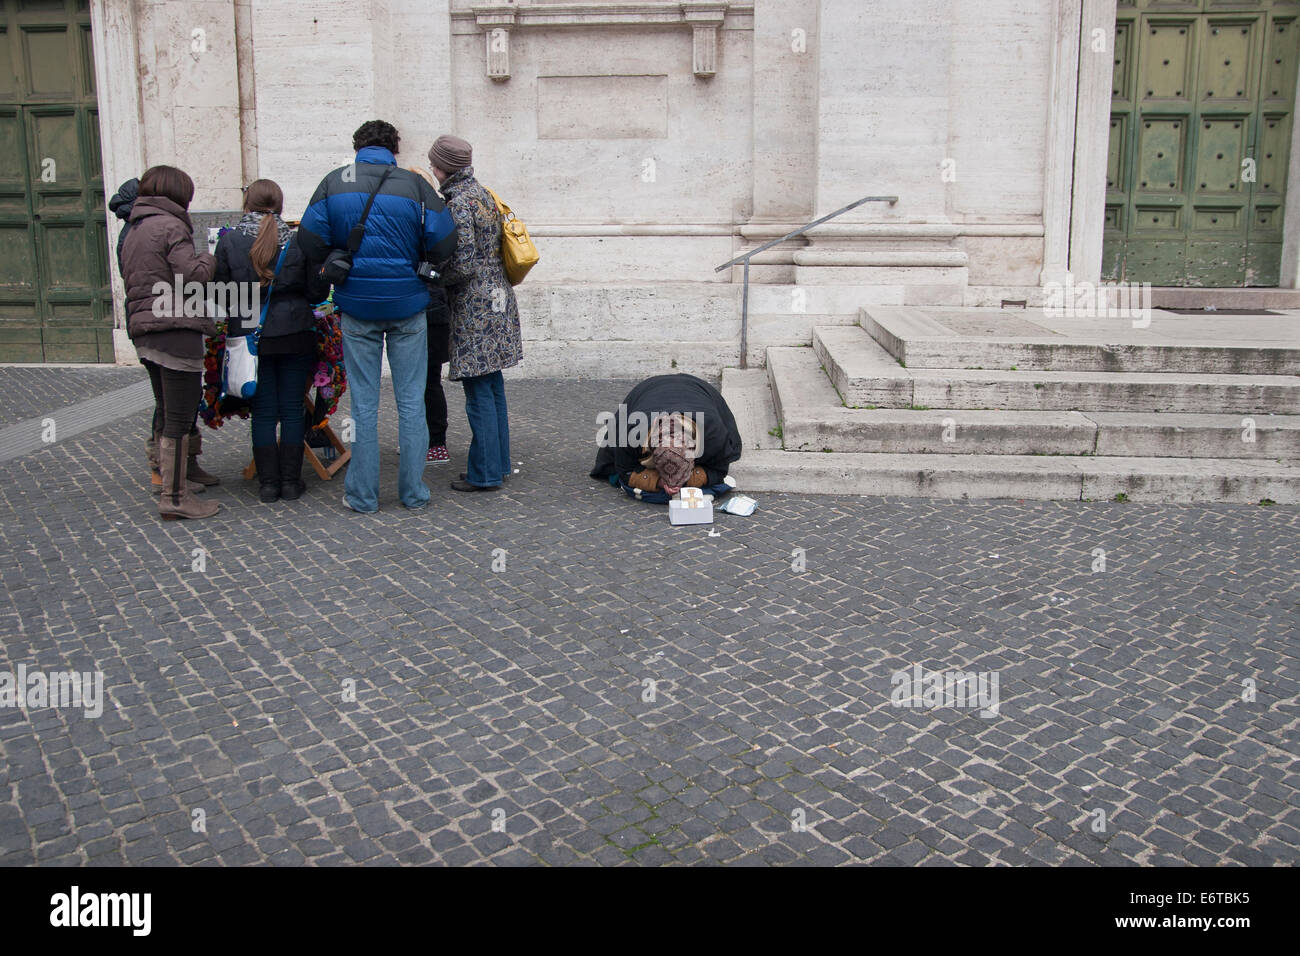 A group of tourists and a female beggar in Rome, Italy. - Stock Image